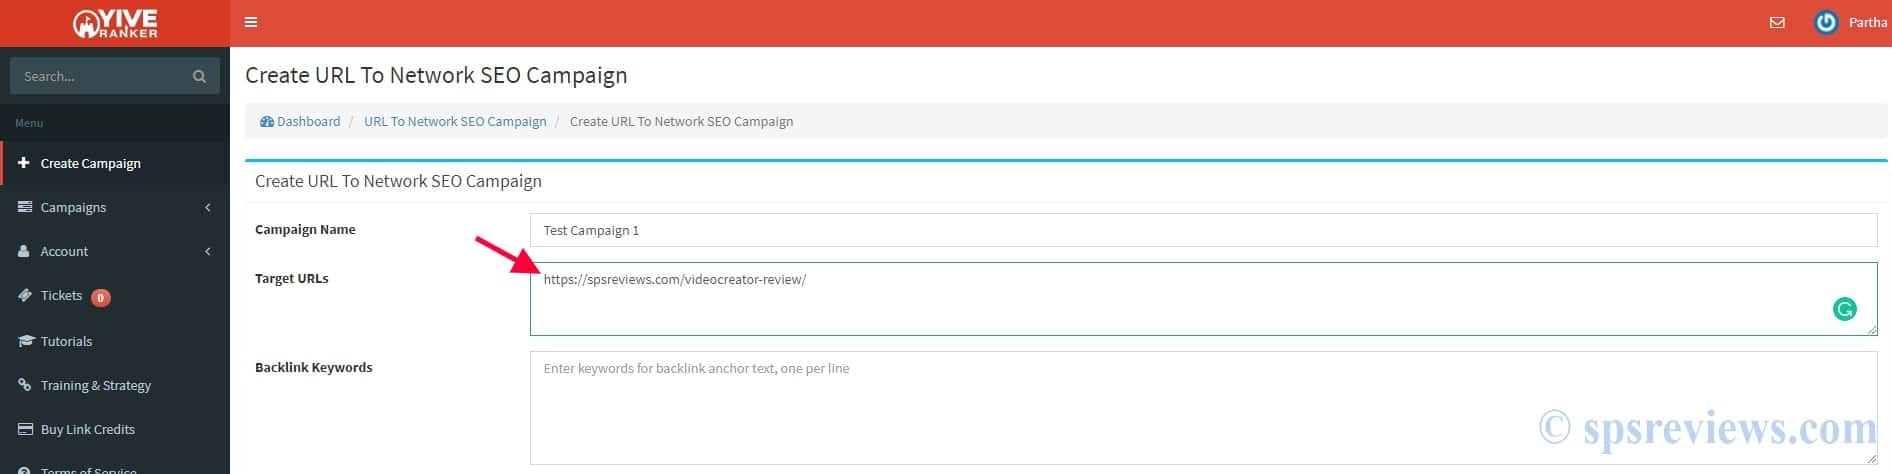 YIVE Ranker Review: Step 1 - Enter Your URL